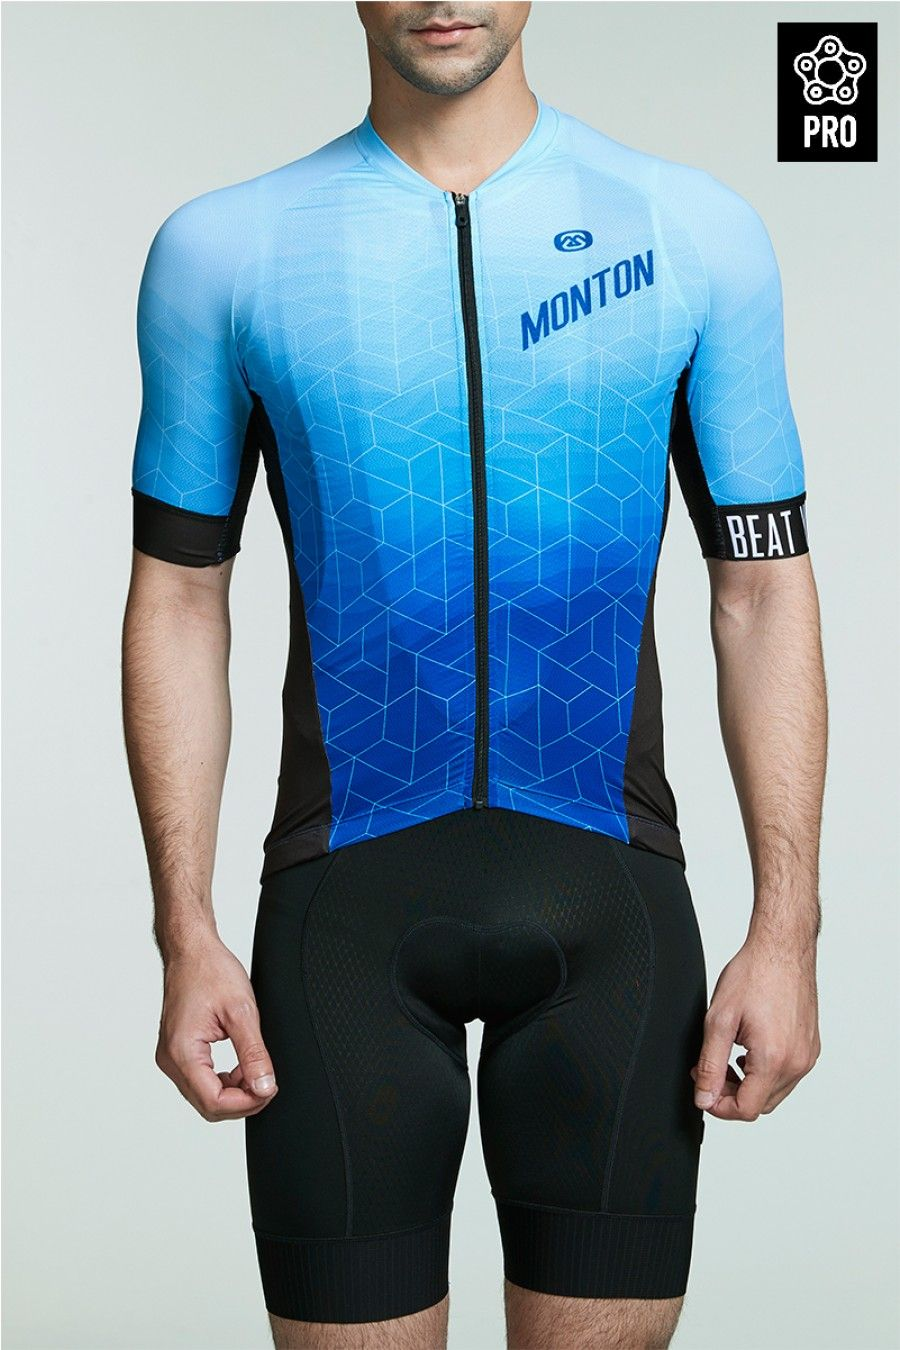 Bicycle Jerseys For Men Cycling Jersey Design Cycling Outfit